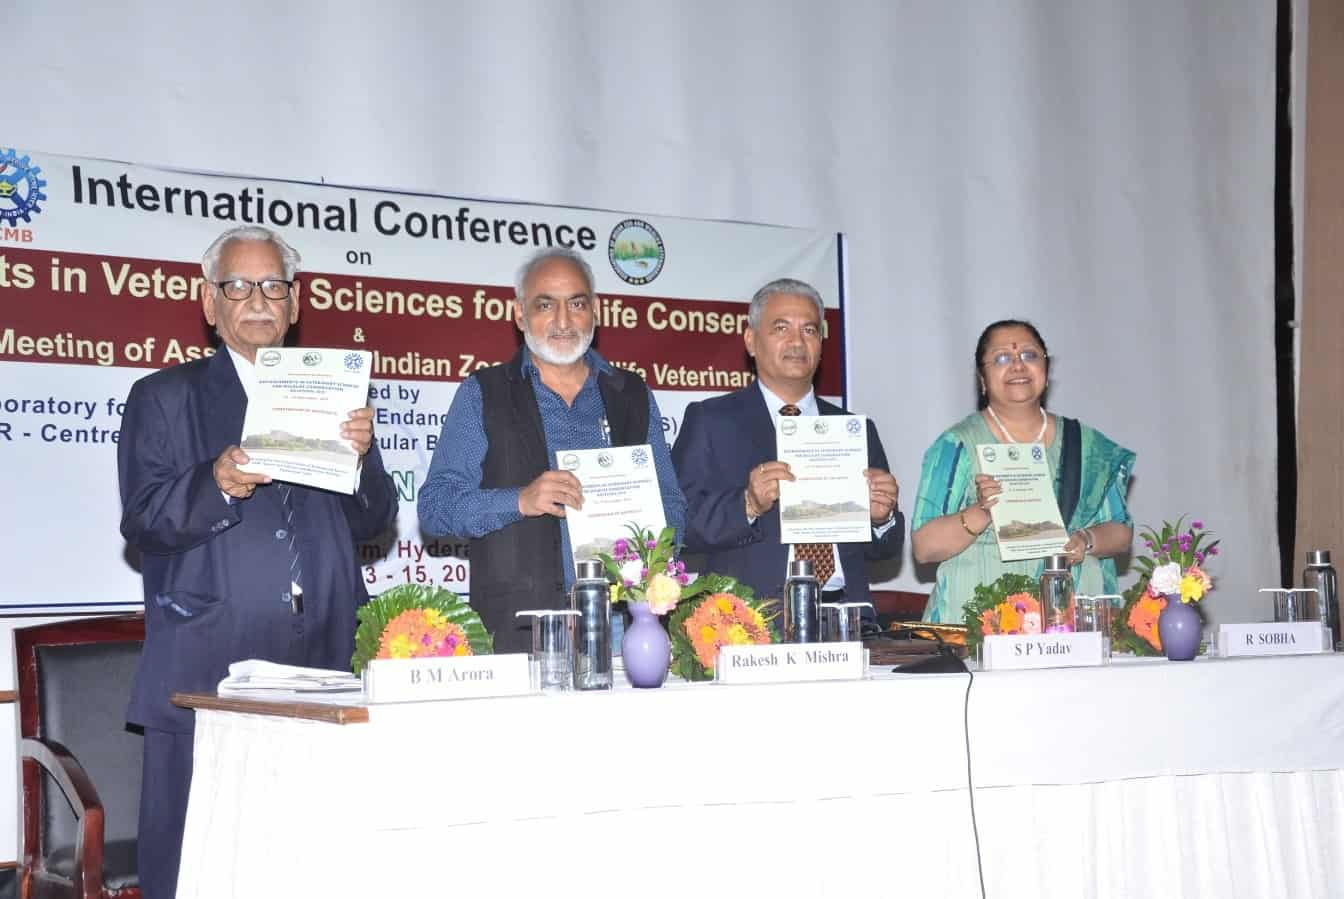 Hyderabad: CCMB to hold an international science conference